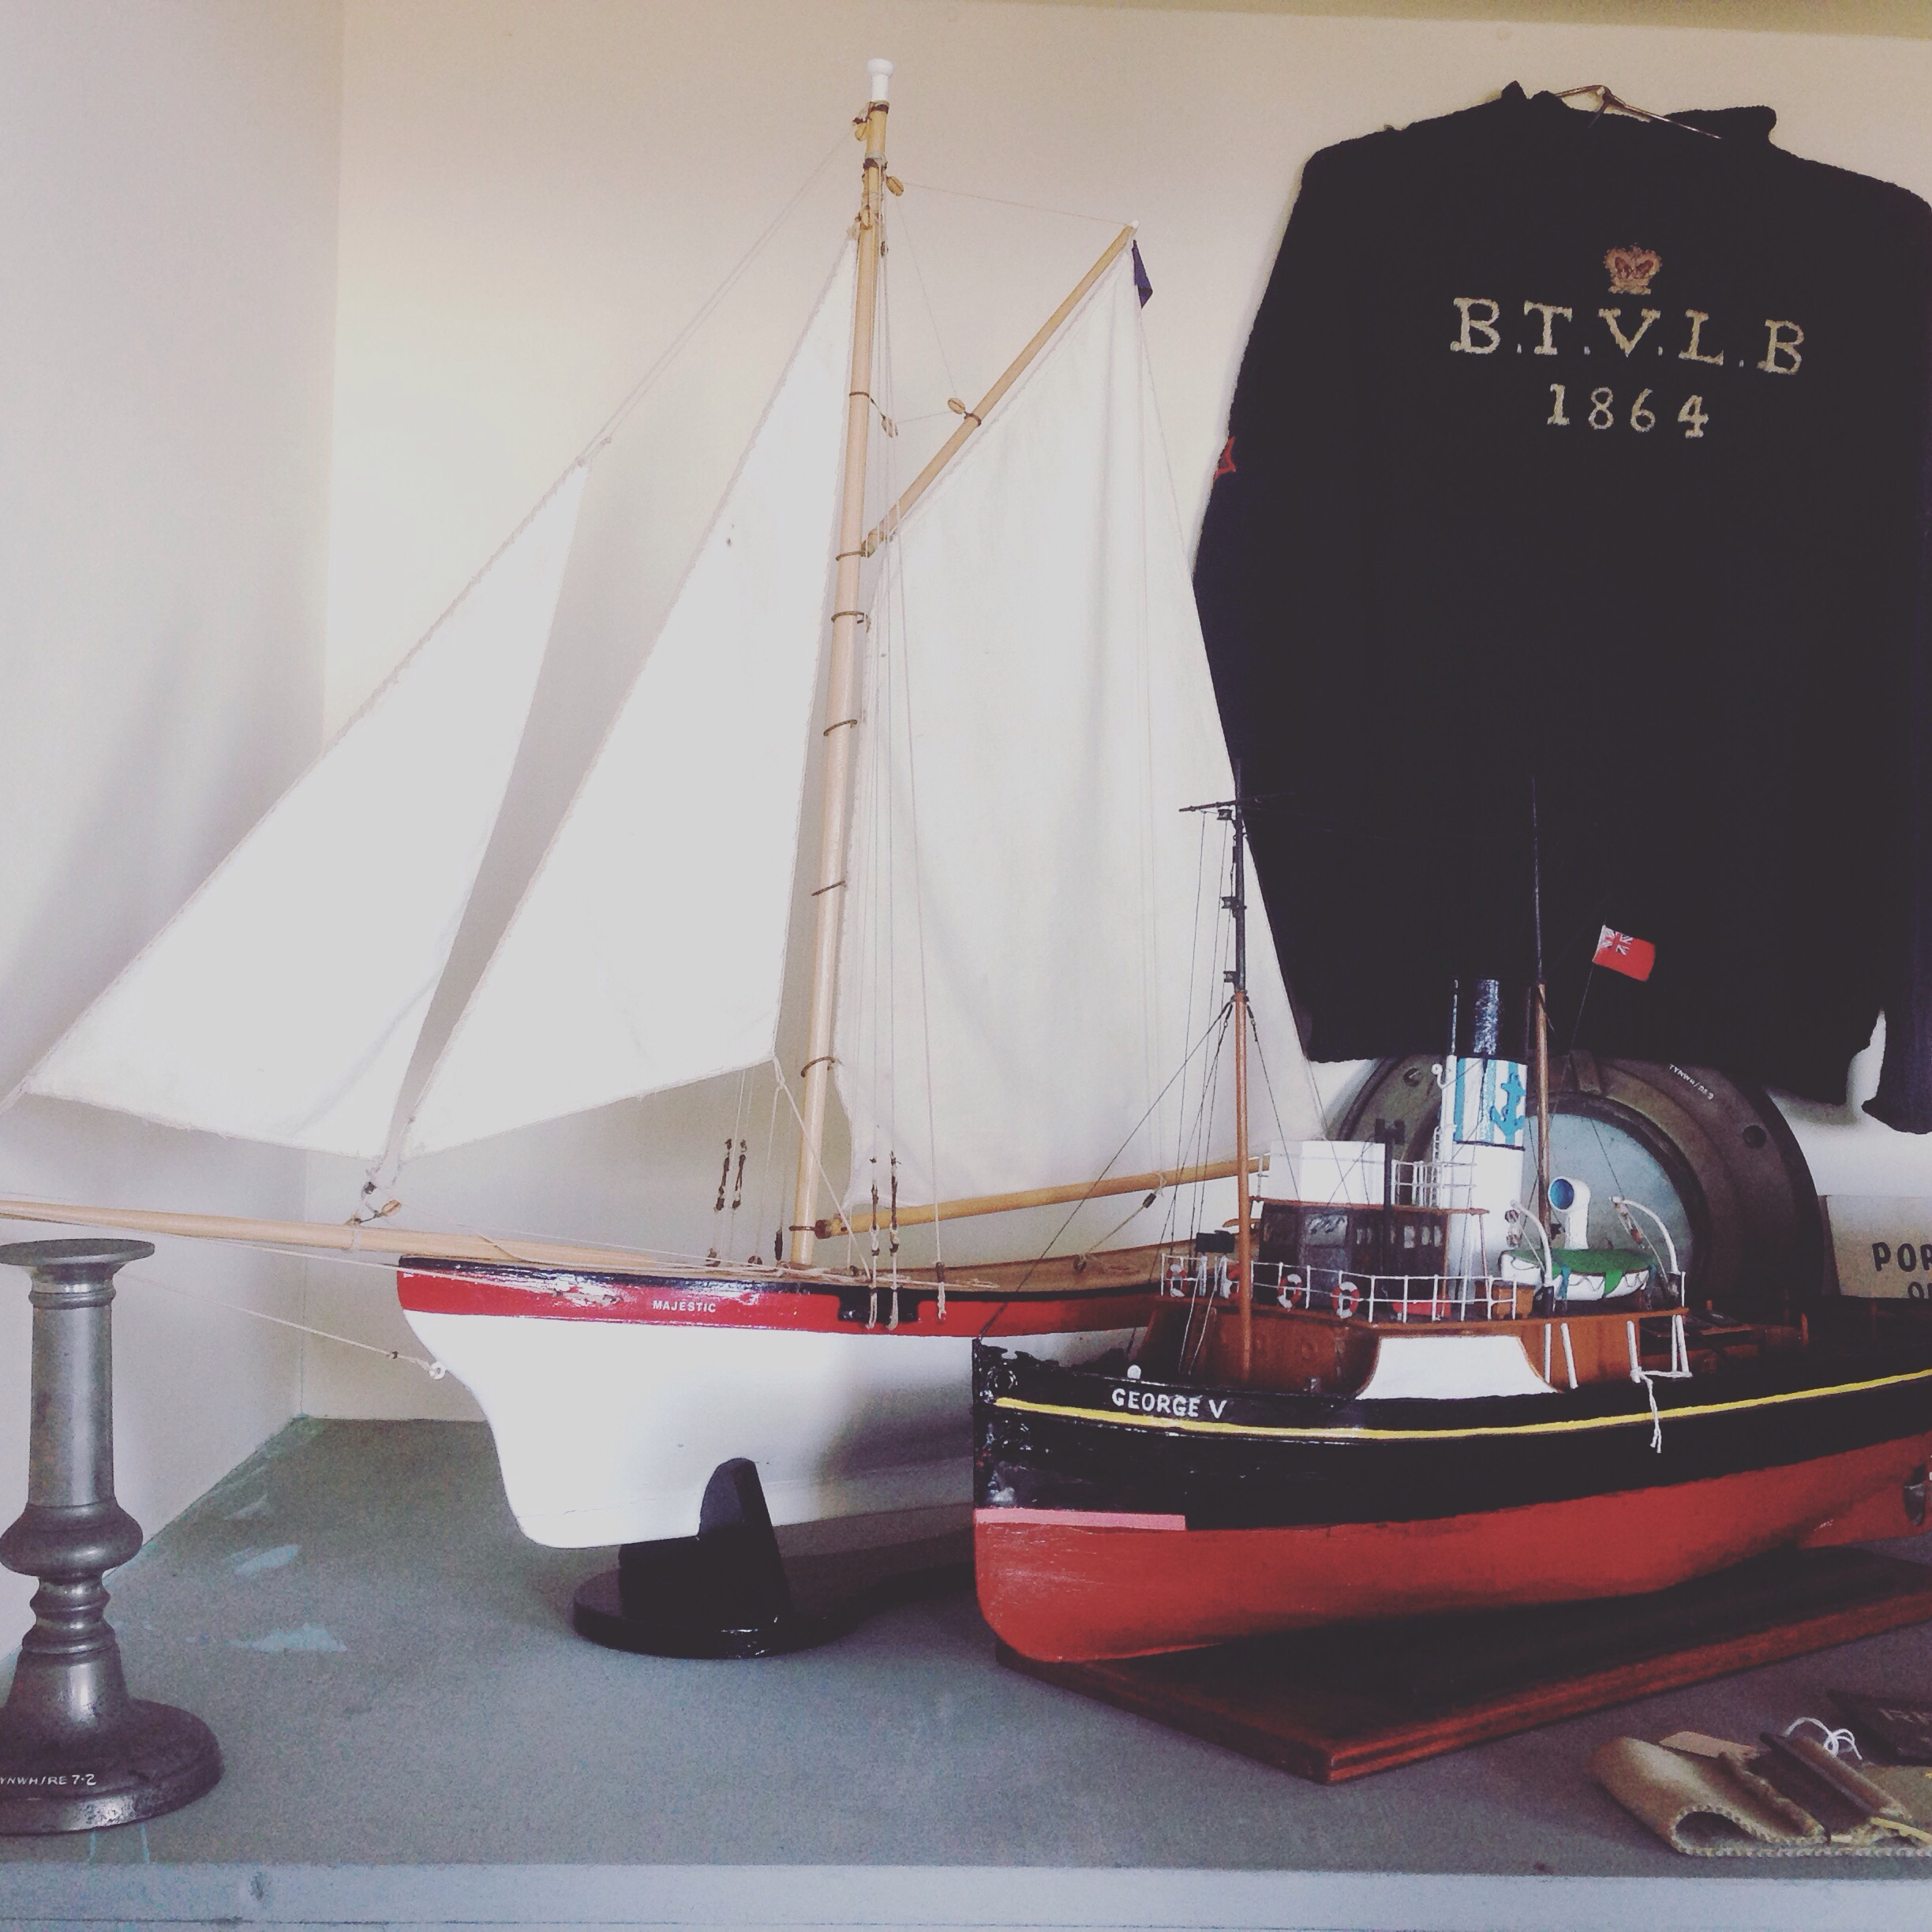 boats and jumper in the TVLB museum, Tynemouth